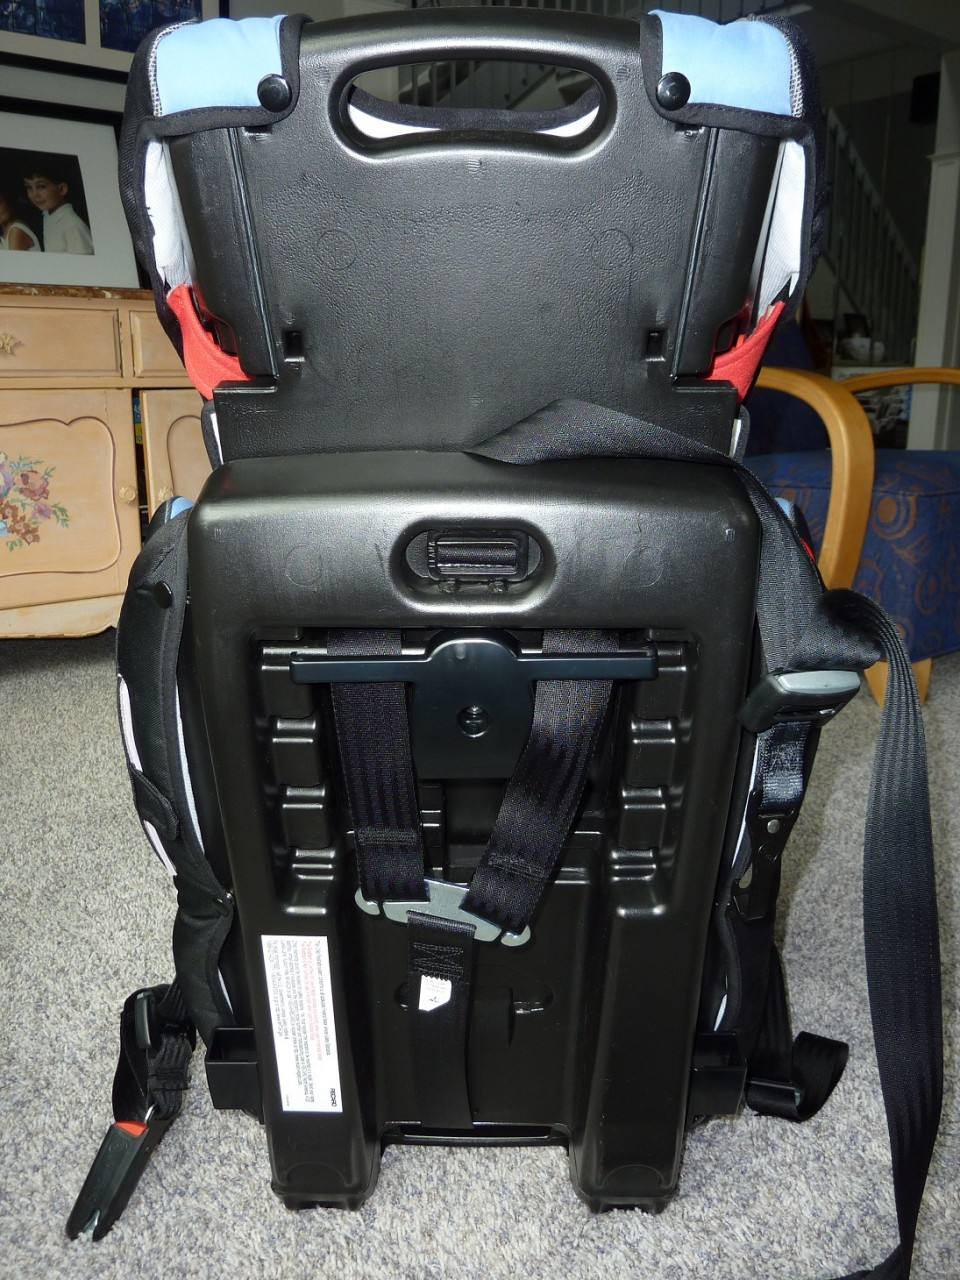 Recaro Baby Seat Parts Carseatblog The Most Trusted Source For Car Seat Reviews